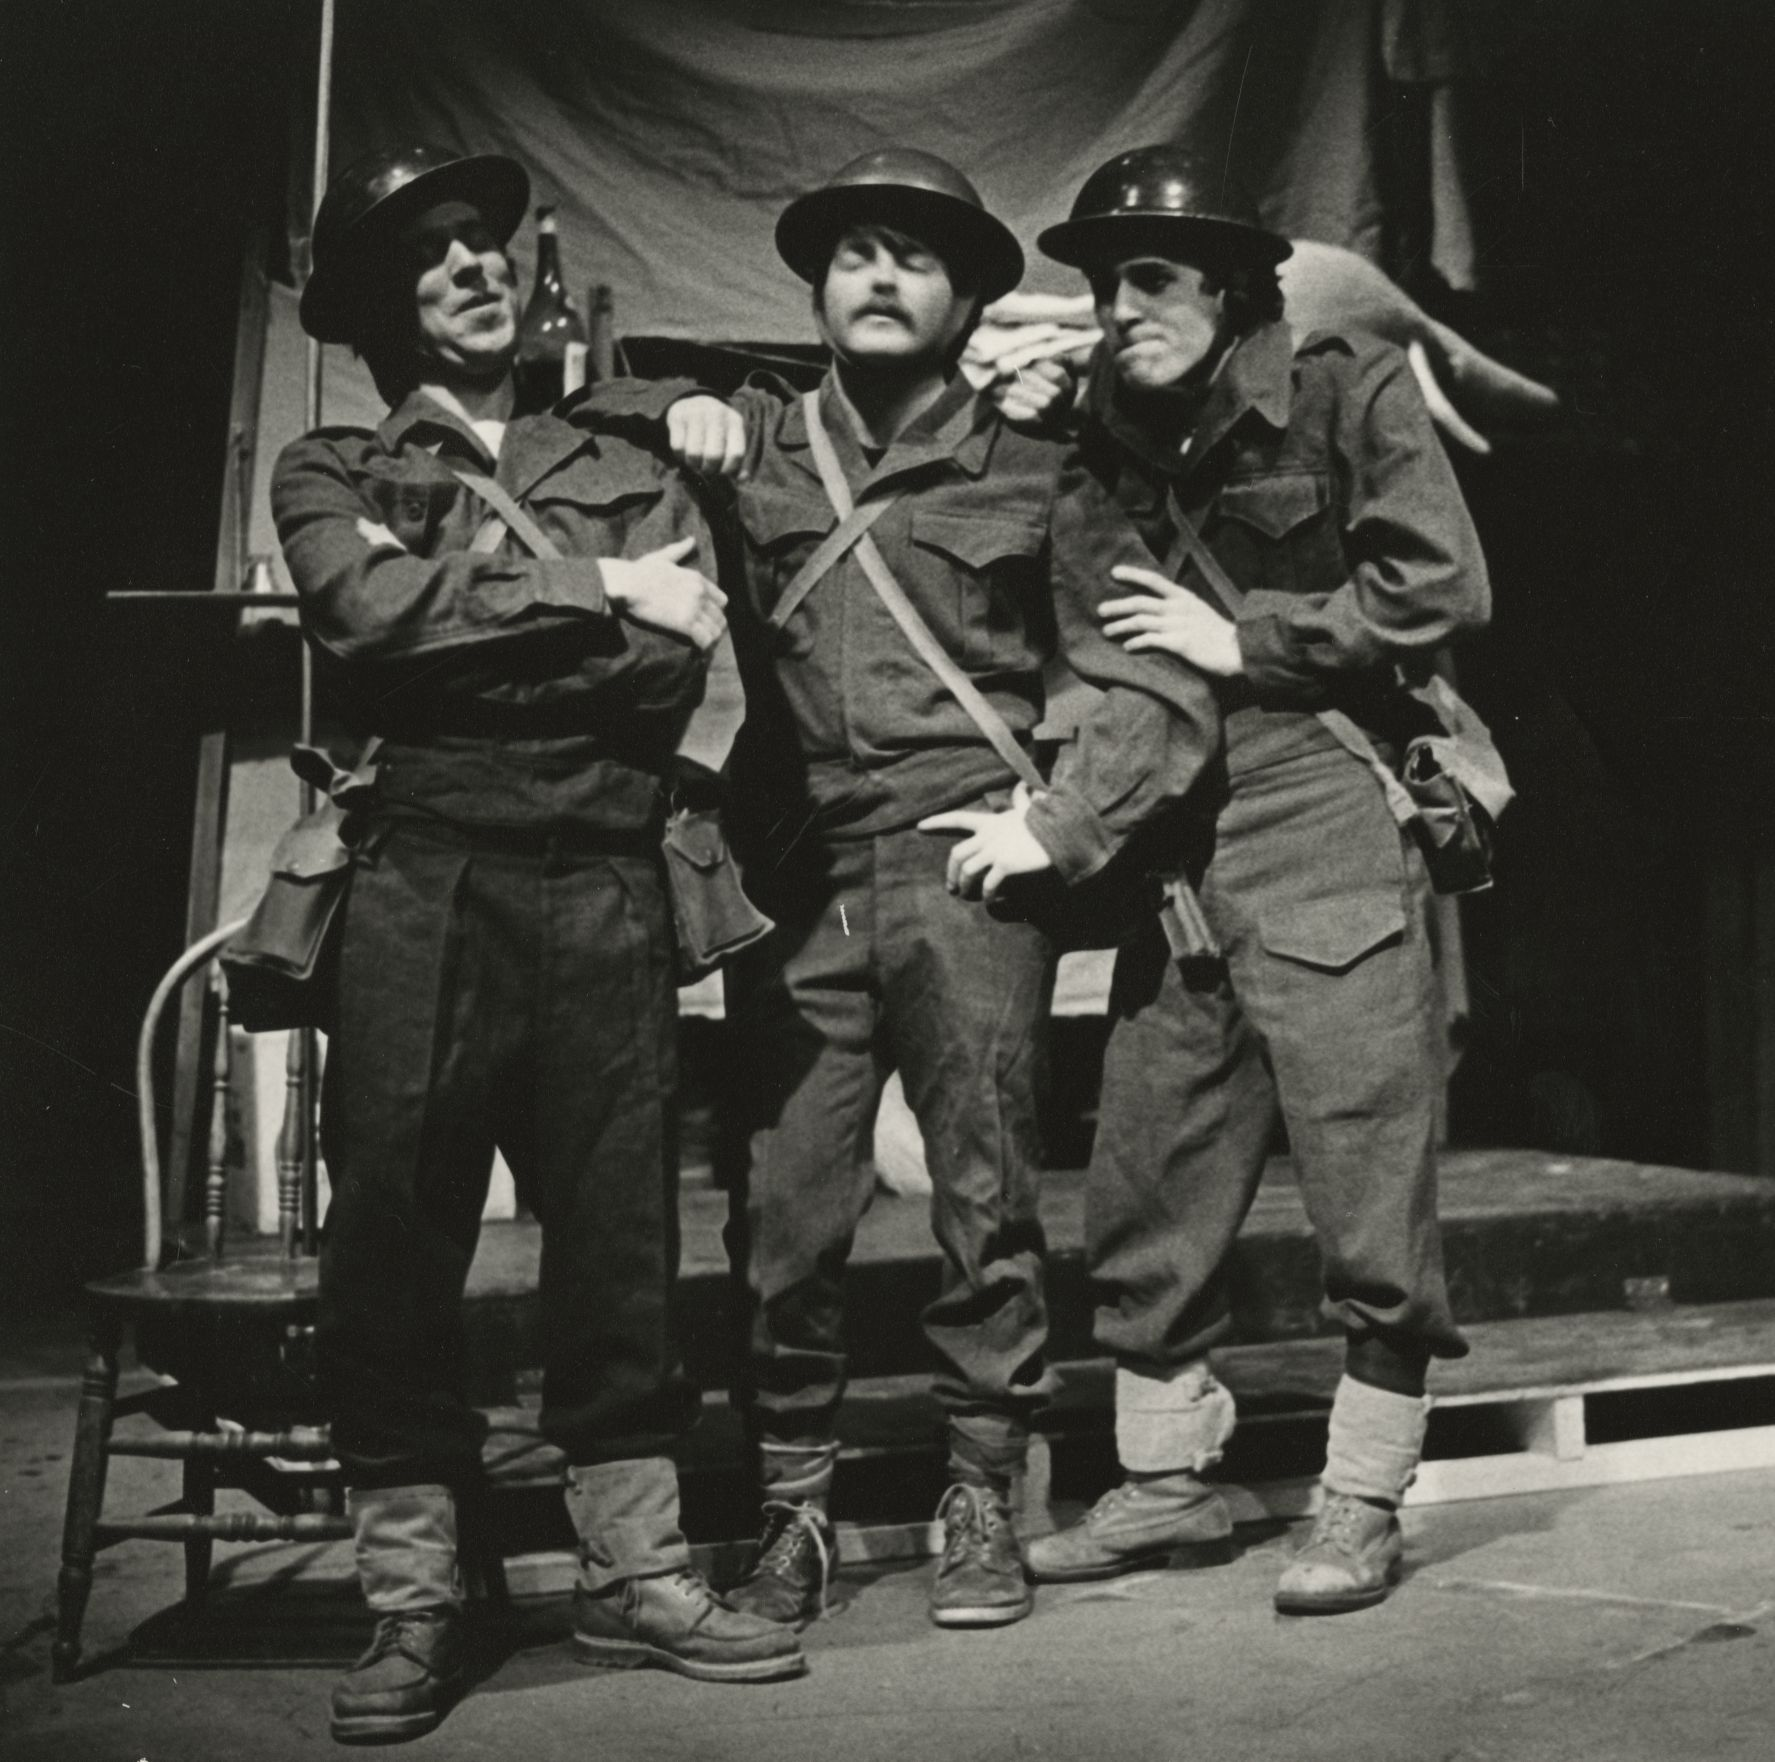 Three men standing together on stage wearing military uniforms. The stage is decorated with drop sheet, a table and chair, and liquor bottles.